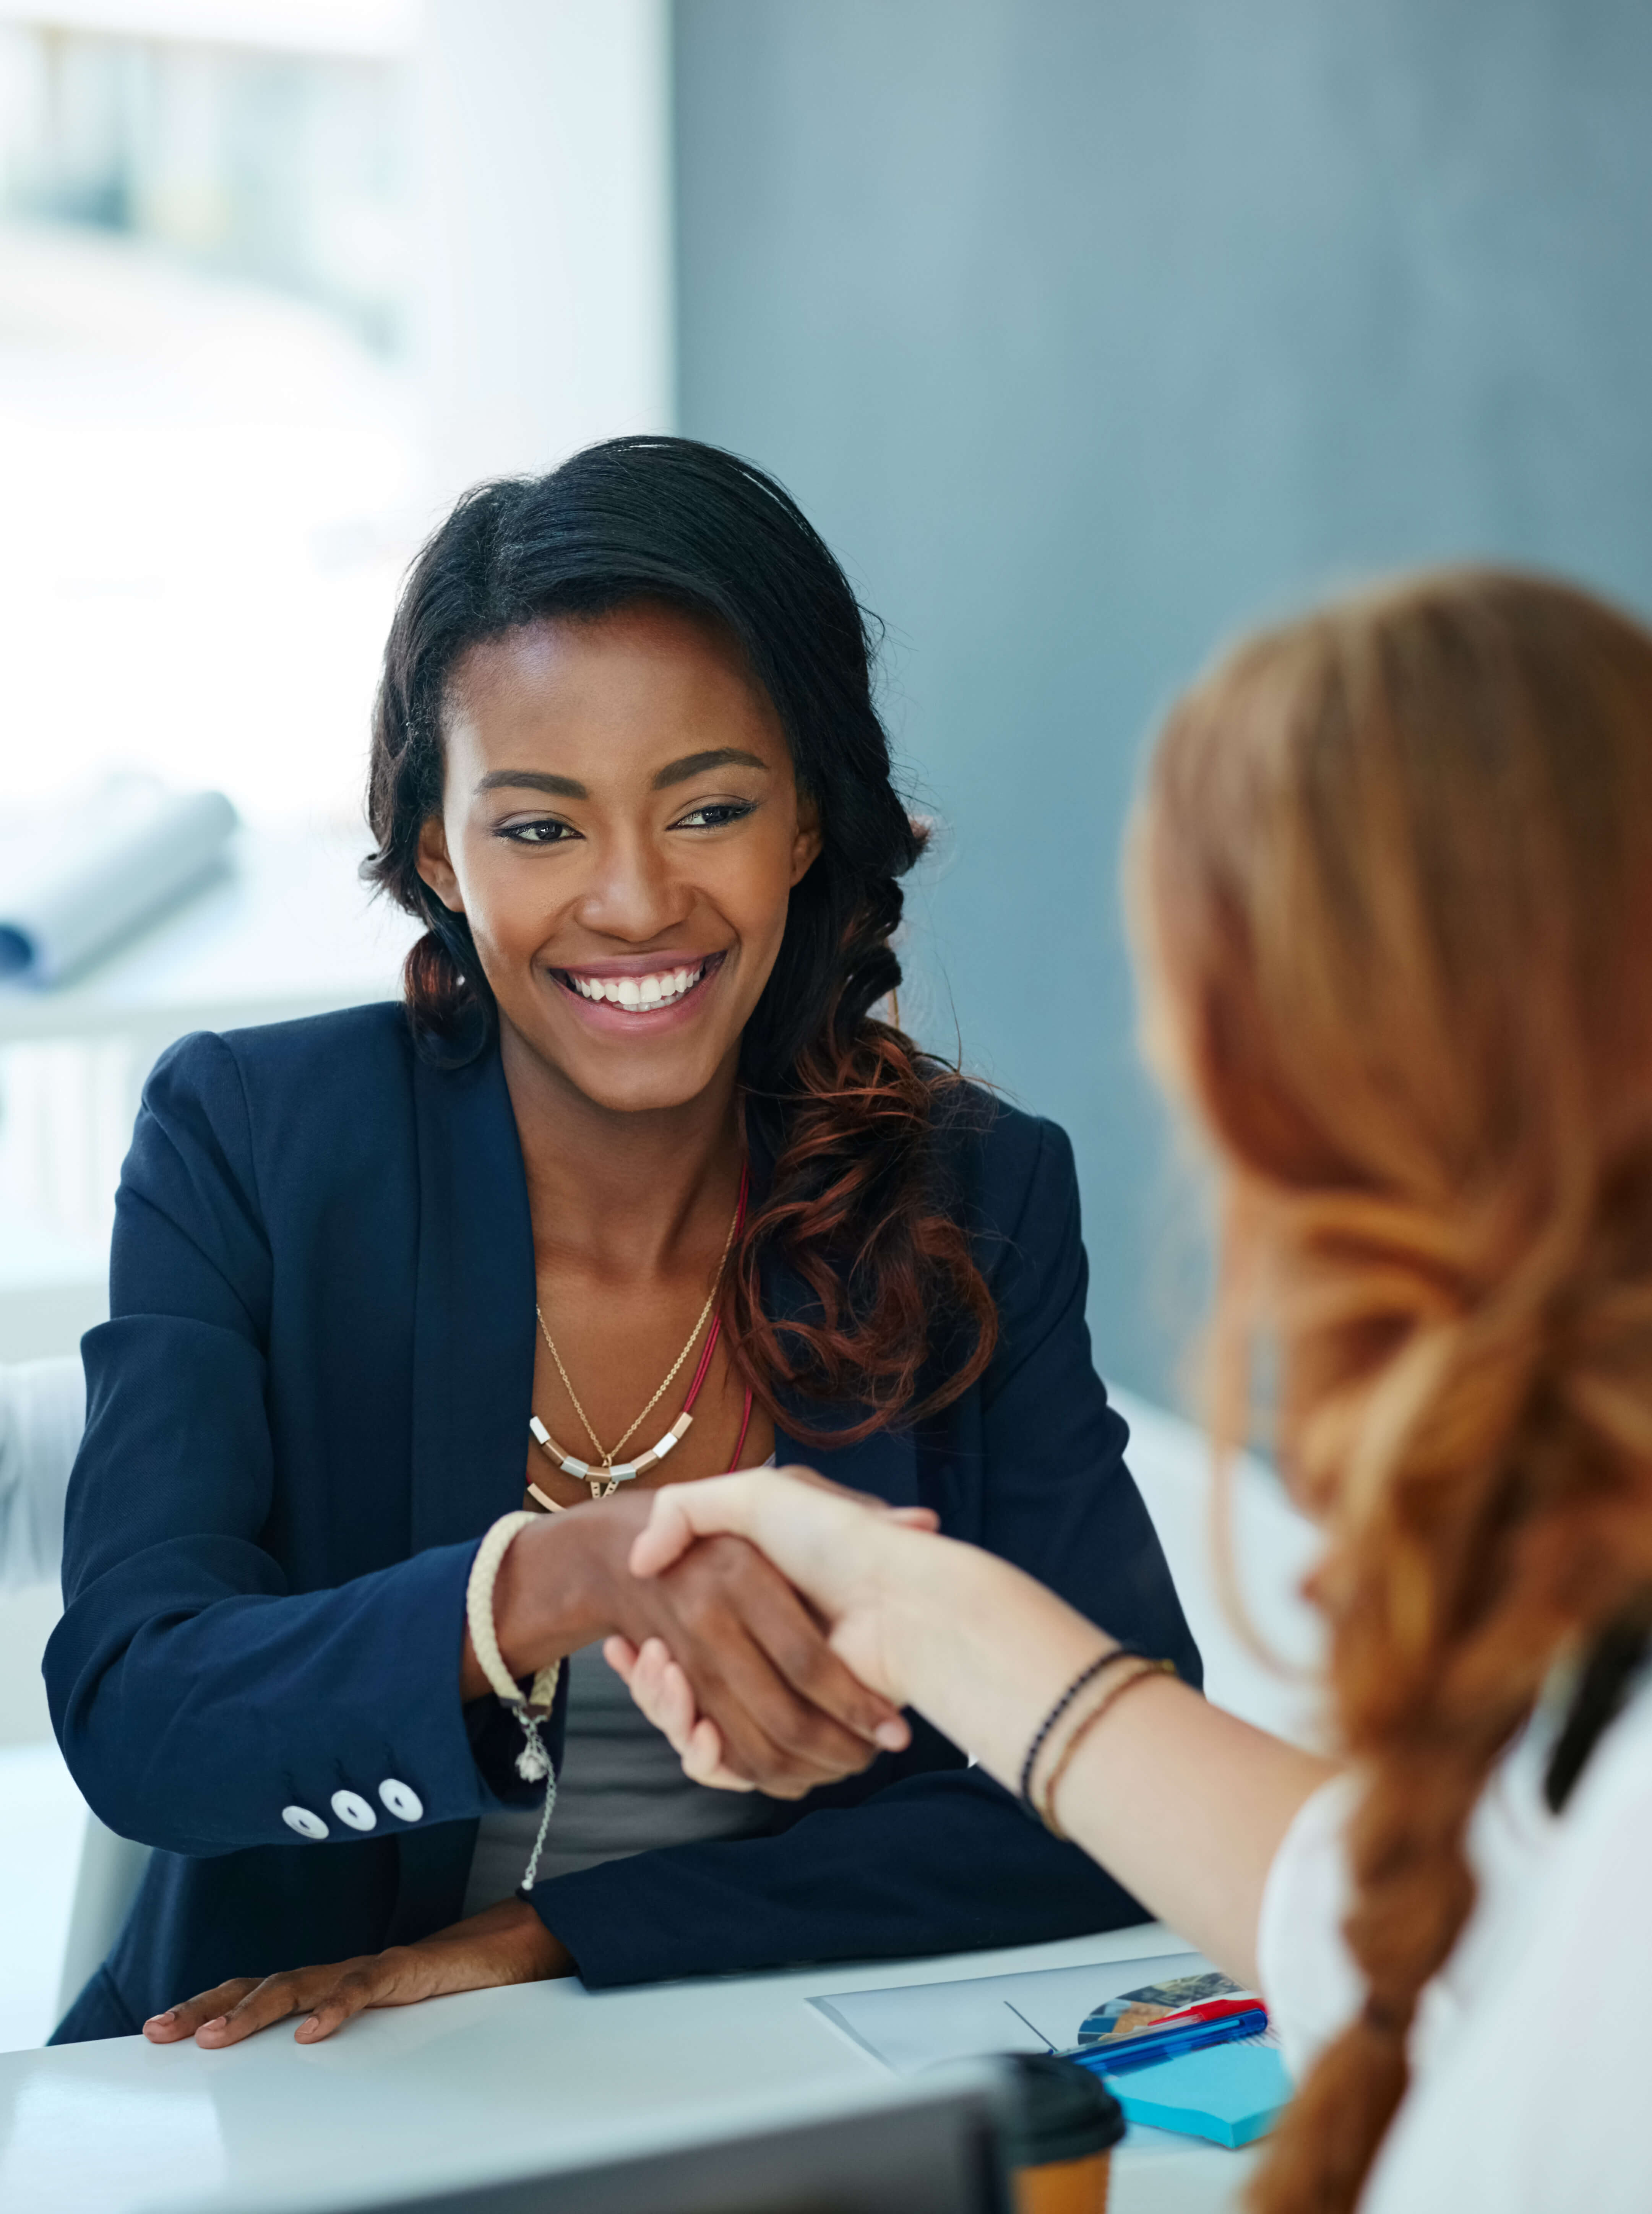 Two women in a business meeting shaking hands